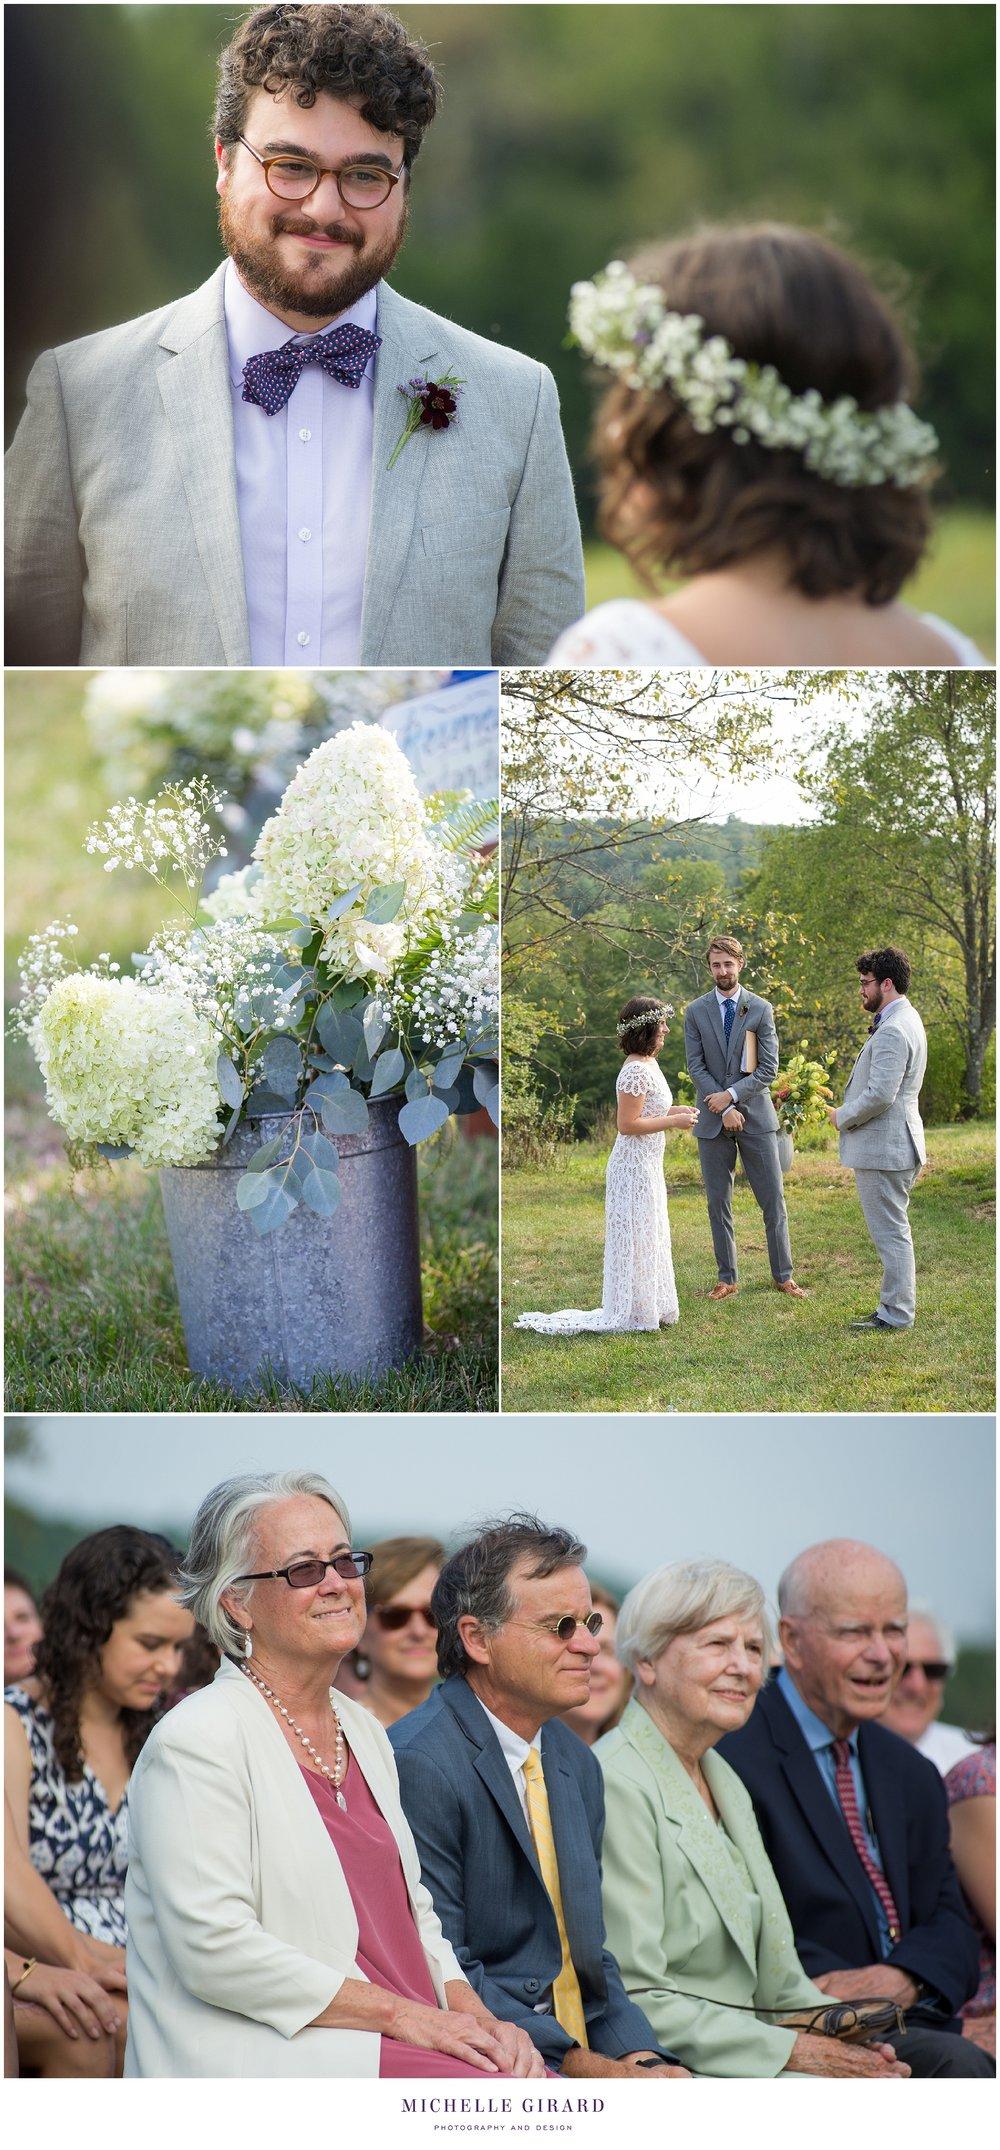 RusticWedding_MaplewoodFamilyFarm_MountainTopCeremony_MichelleGirardPhotography13.jpg